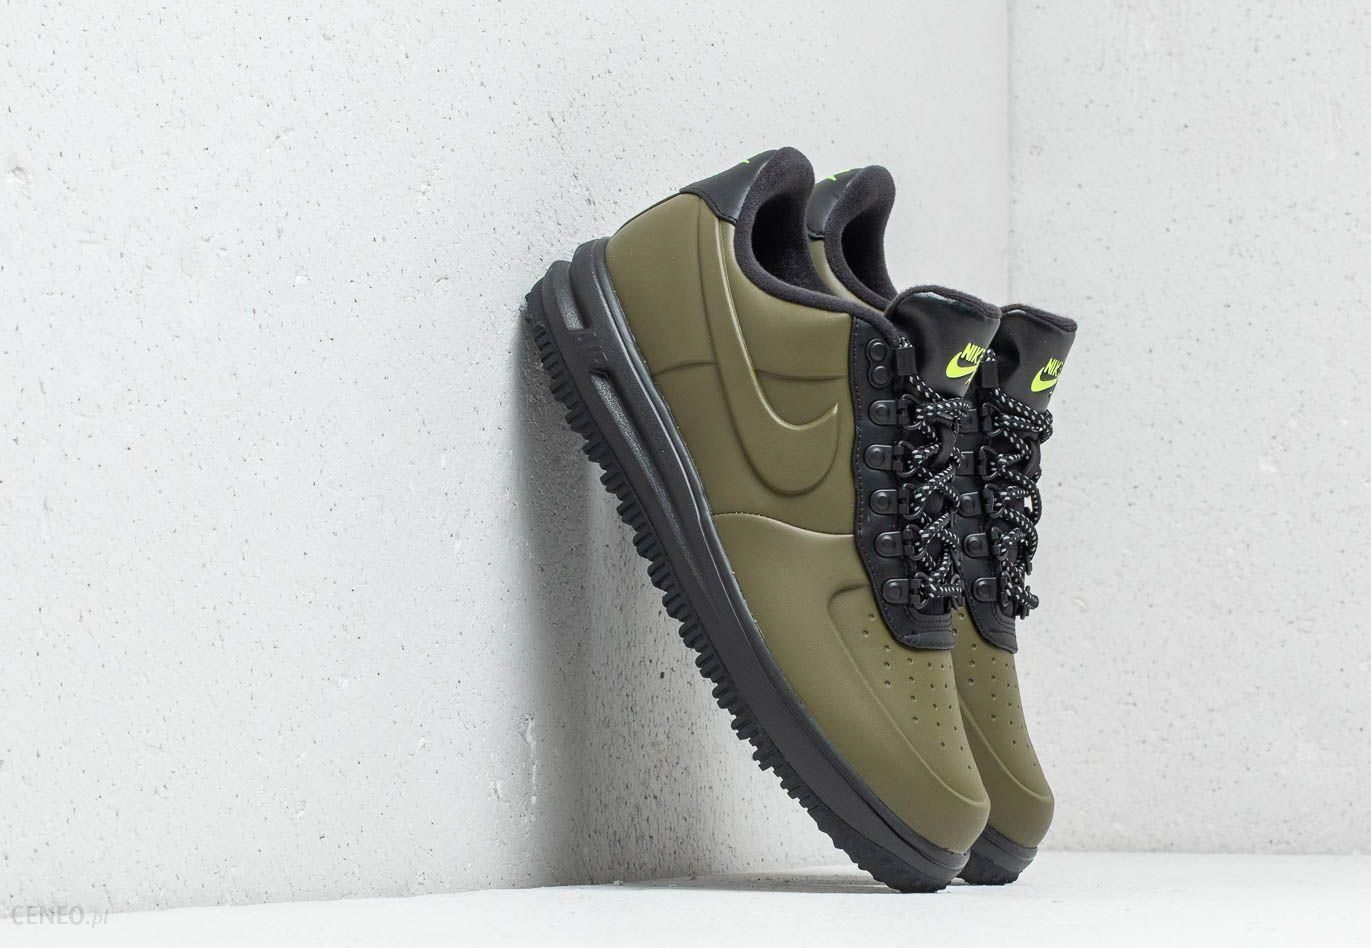 78a85a01fee3 Nike Lunar Force 1 Duckboot Low Olive Canvas  Olive Canvas - zdjęcie 1